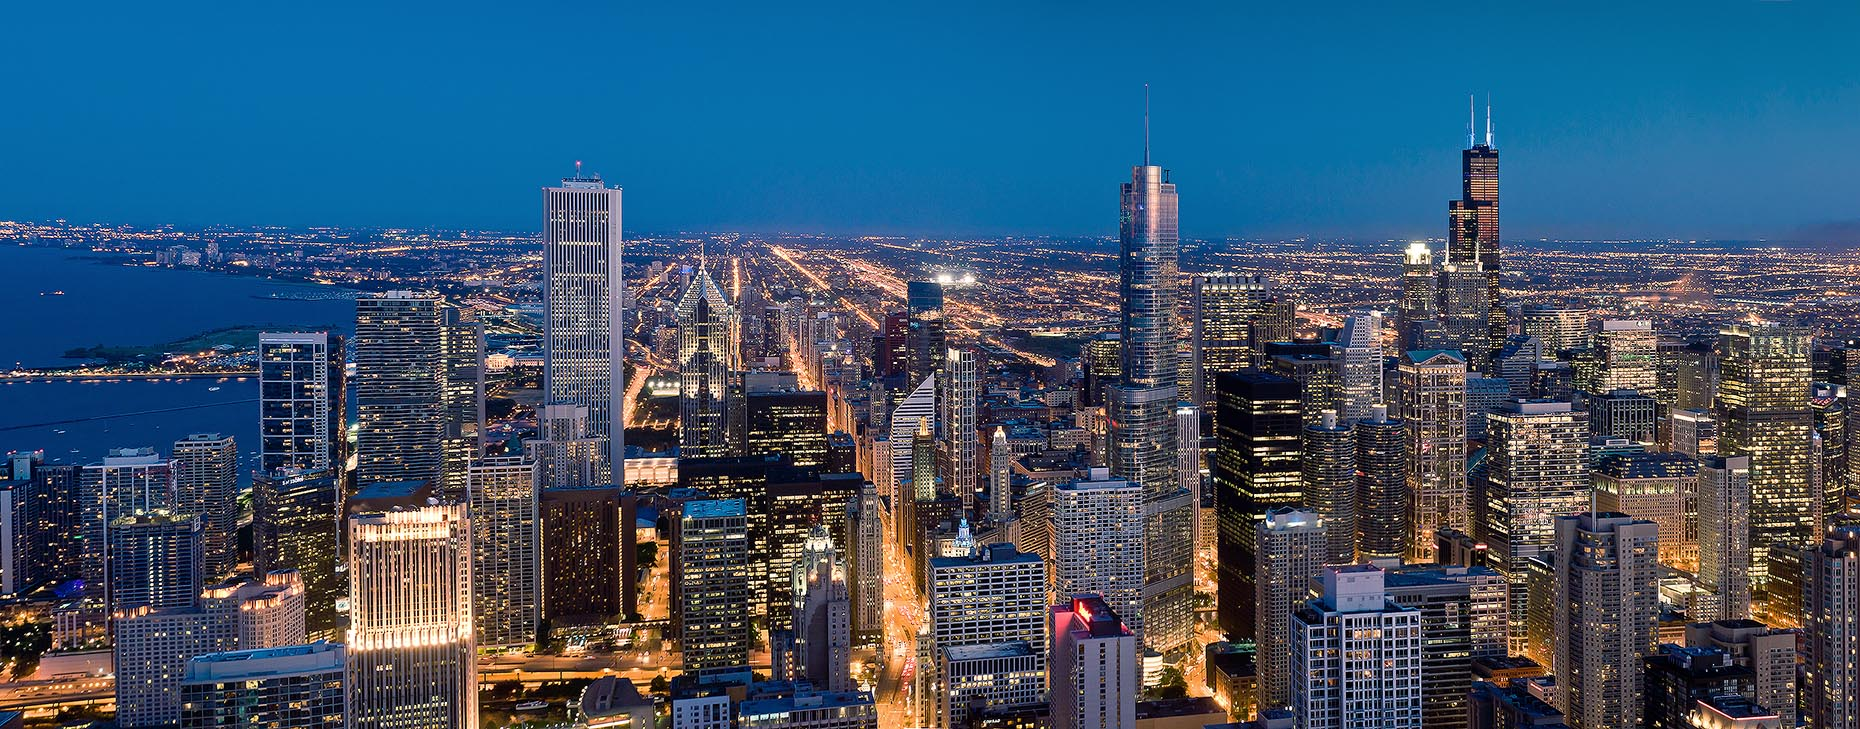 john-hancock-centre-view-aerial-chicago-city-night-skyscraper-usa-24a